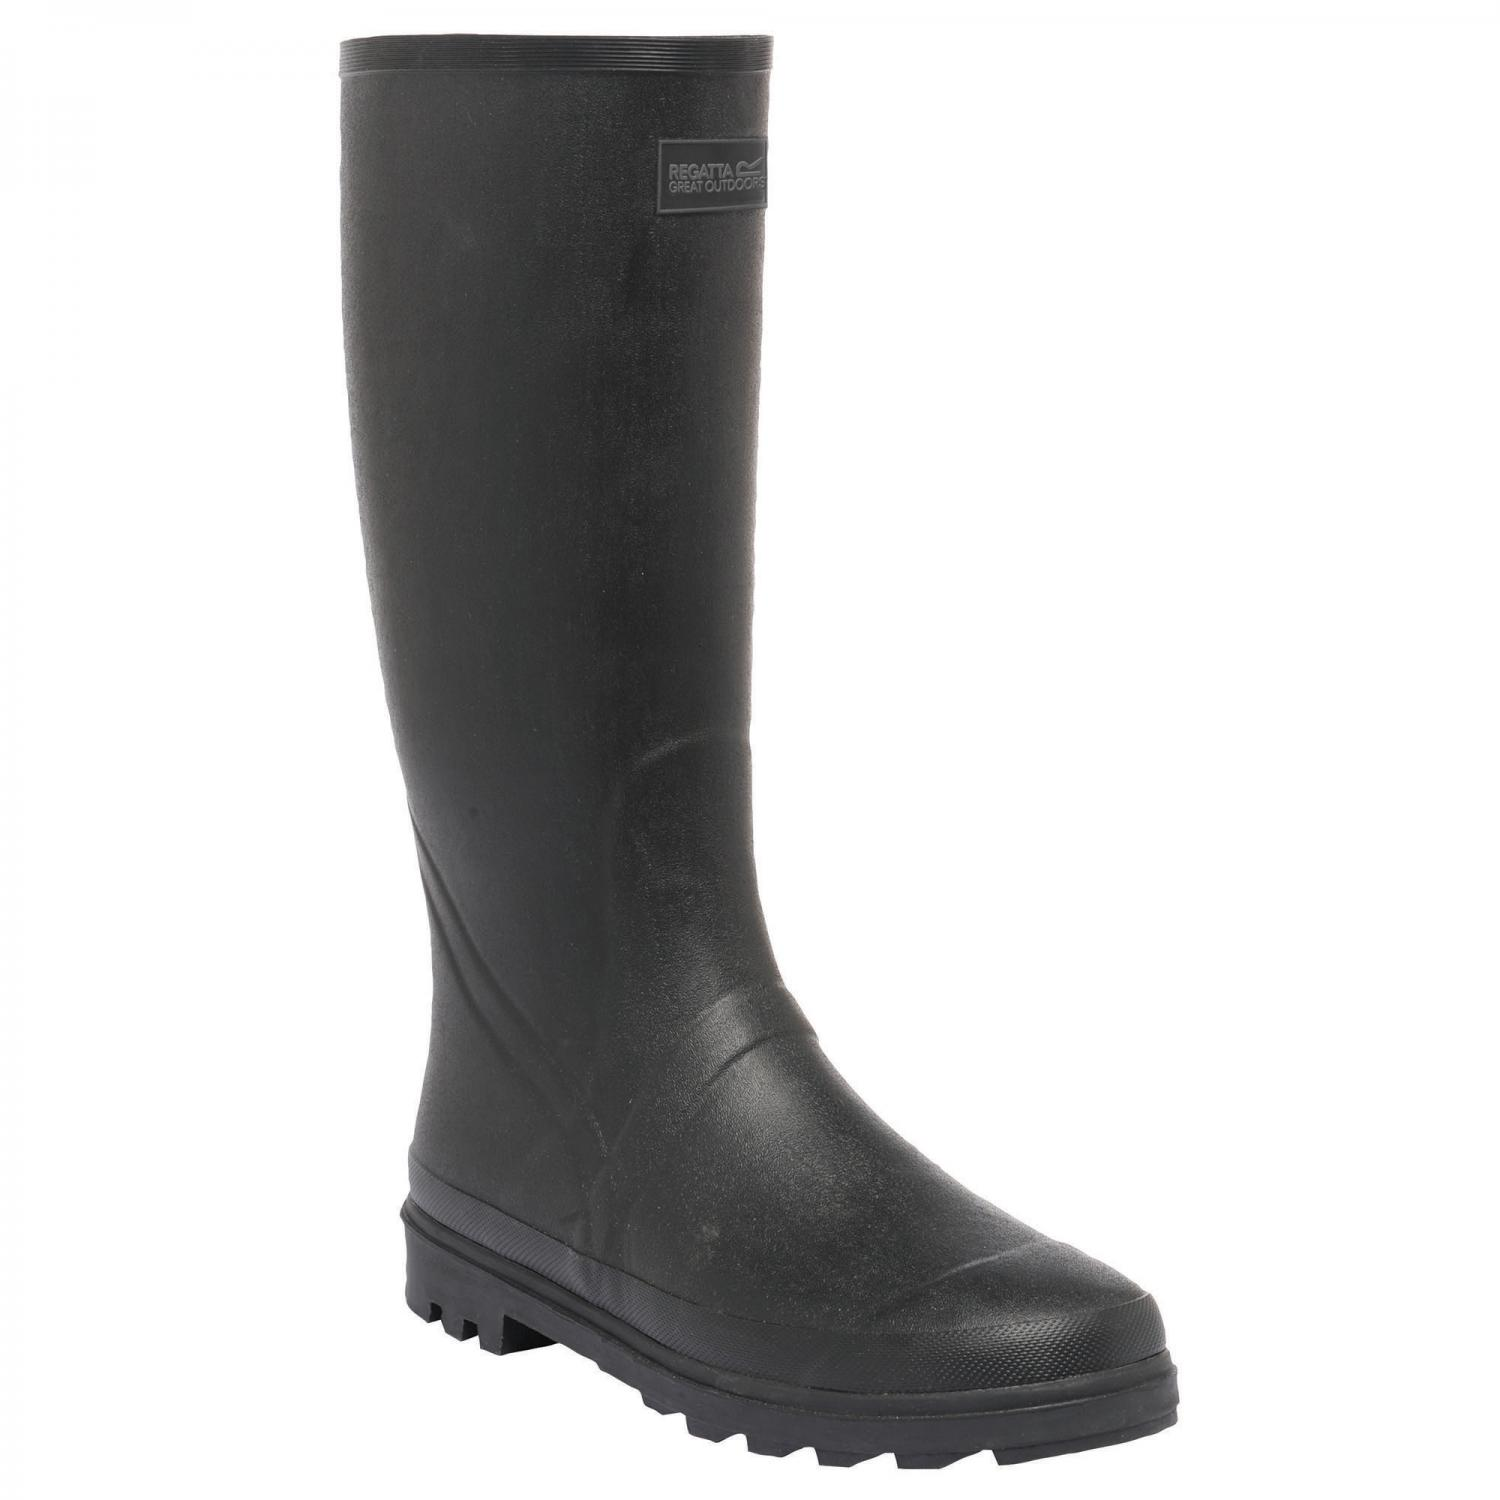 Mumford Wellington Boots Black